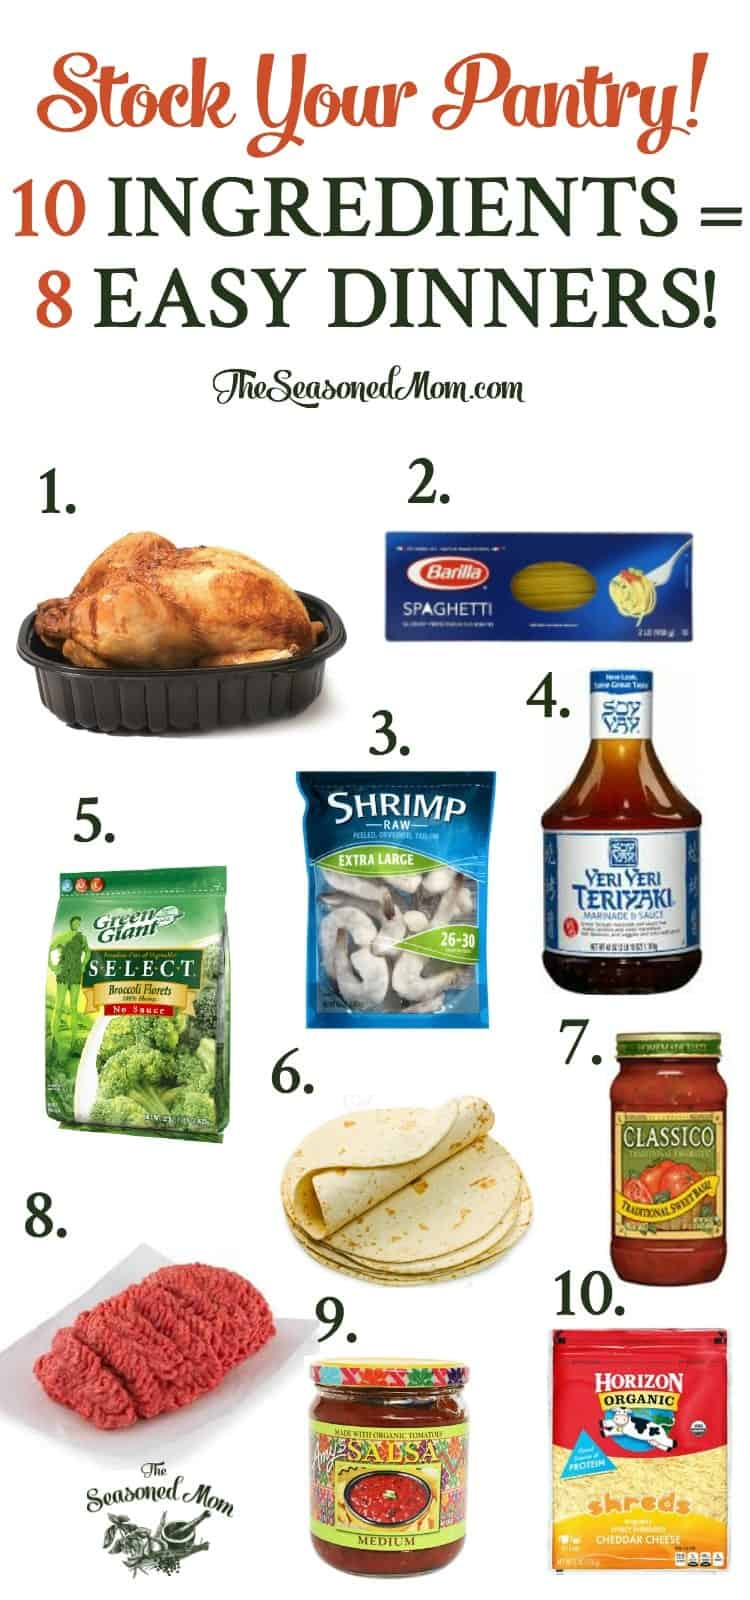 Stock your pantry with these 10 basic ingredients and create 8 easy weeknight dinners -- no last-minute grocery shopping necessary!